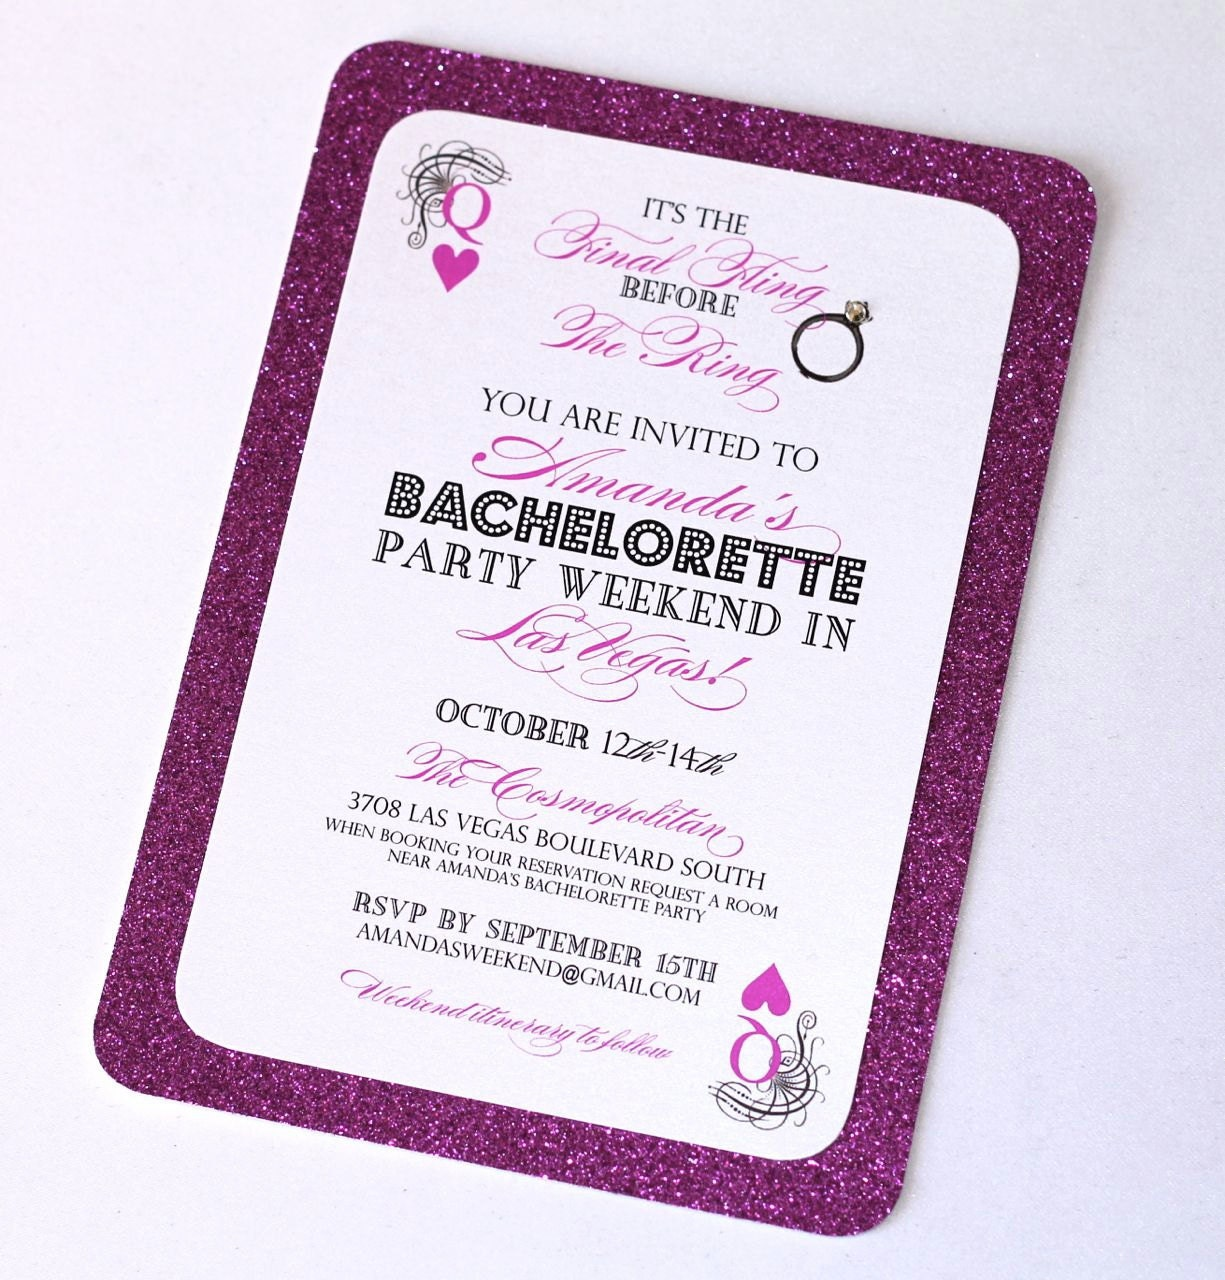 Stella Las Vegas Bachelorette Party Invitation Glitter